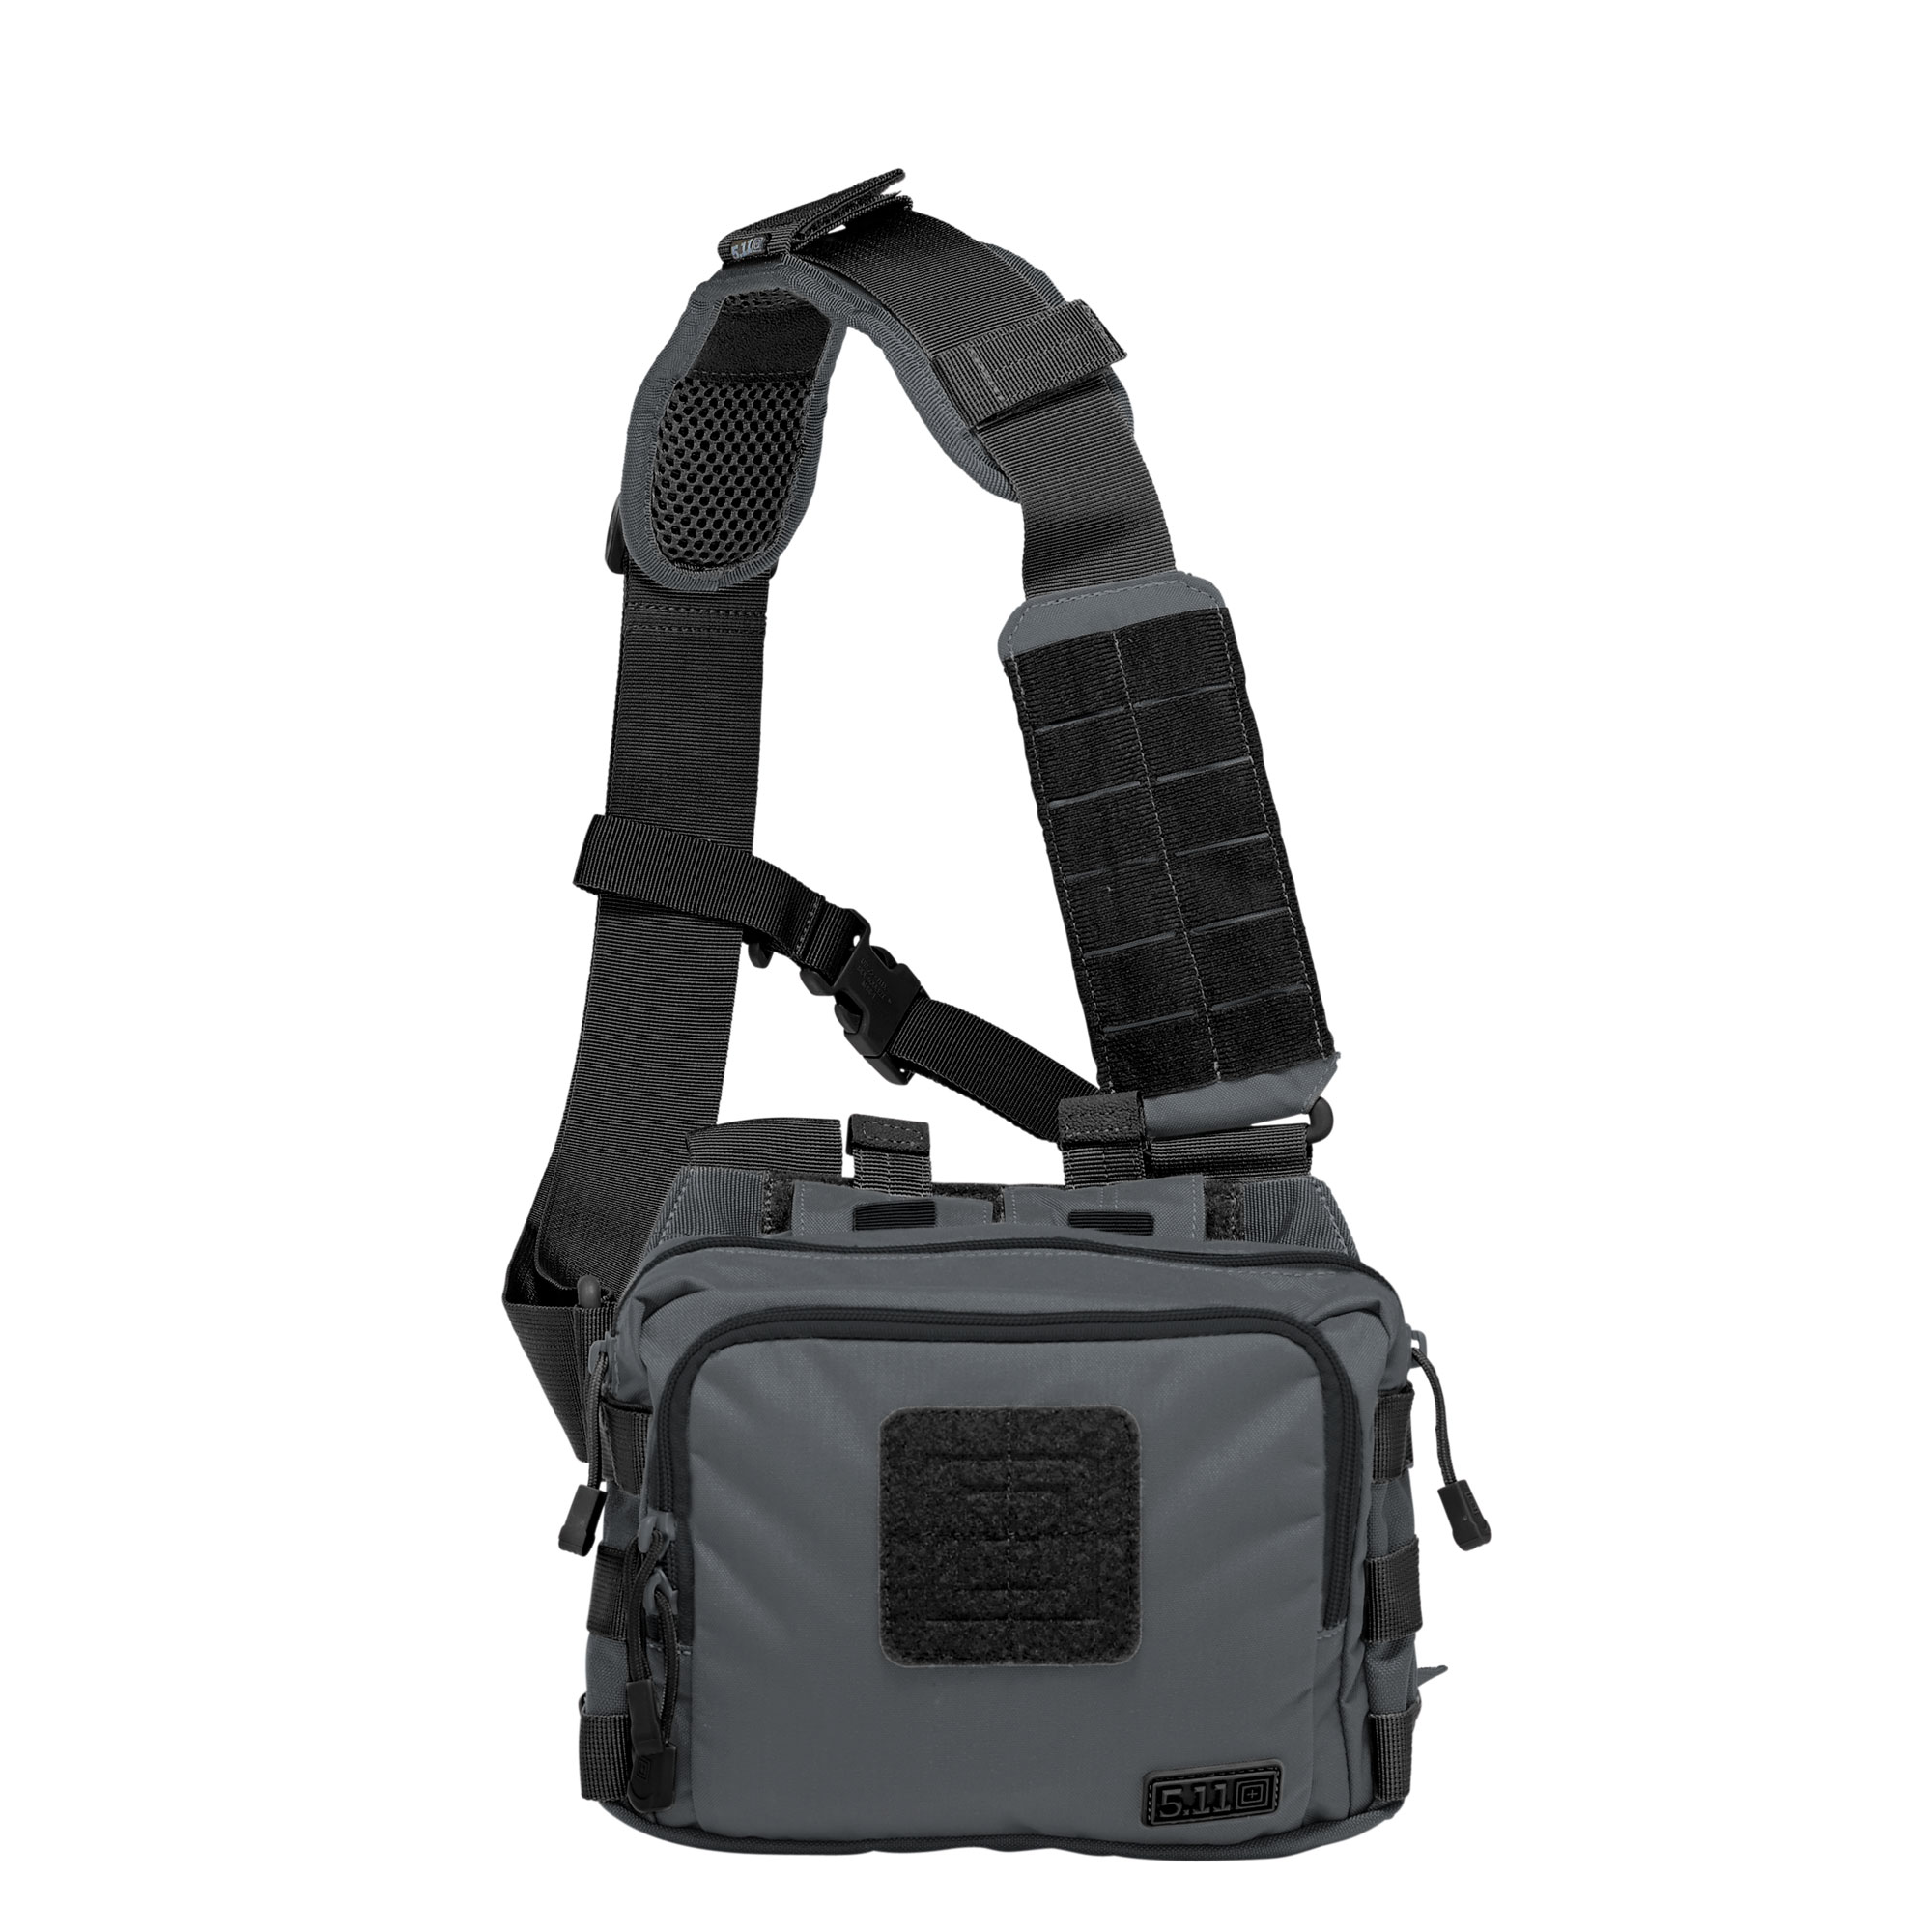 5.11 Tactical 2-Banger Bag (Black;Gray;Multi), Size 1 SZ (CCW Concealed Carry) thumbnail